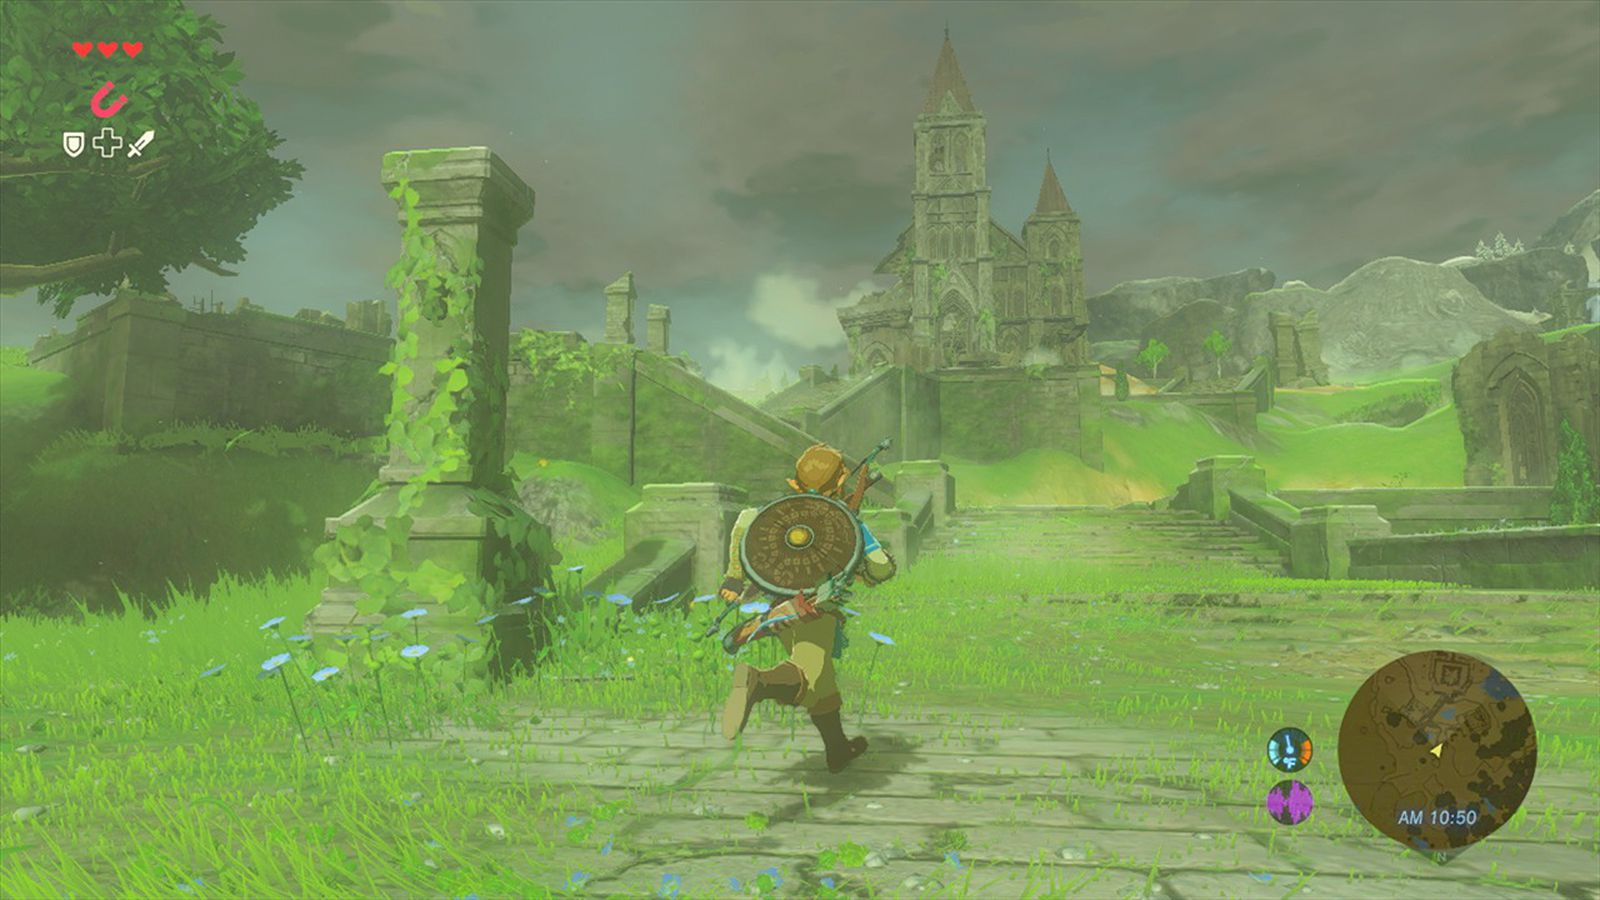 Watch two new trailers for The Legend of Zelda: Breath of the Wild